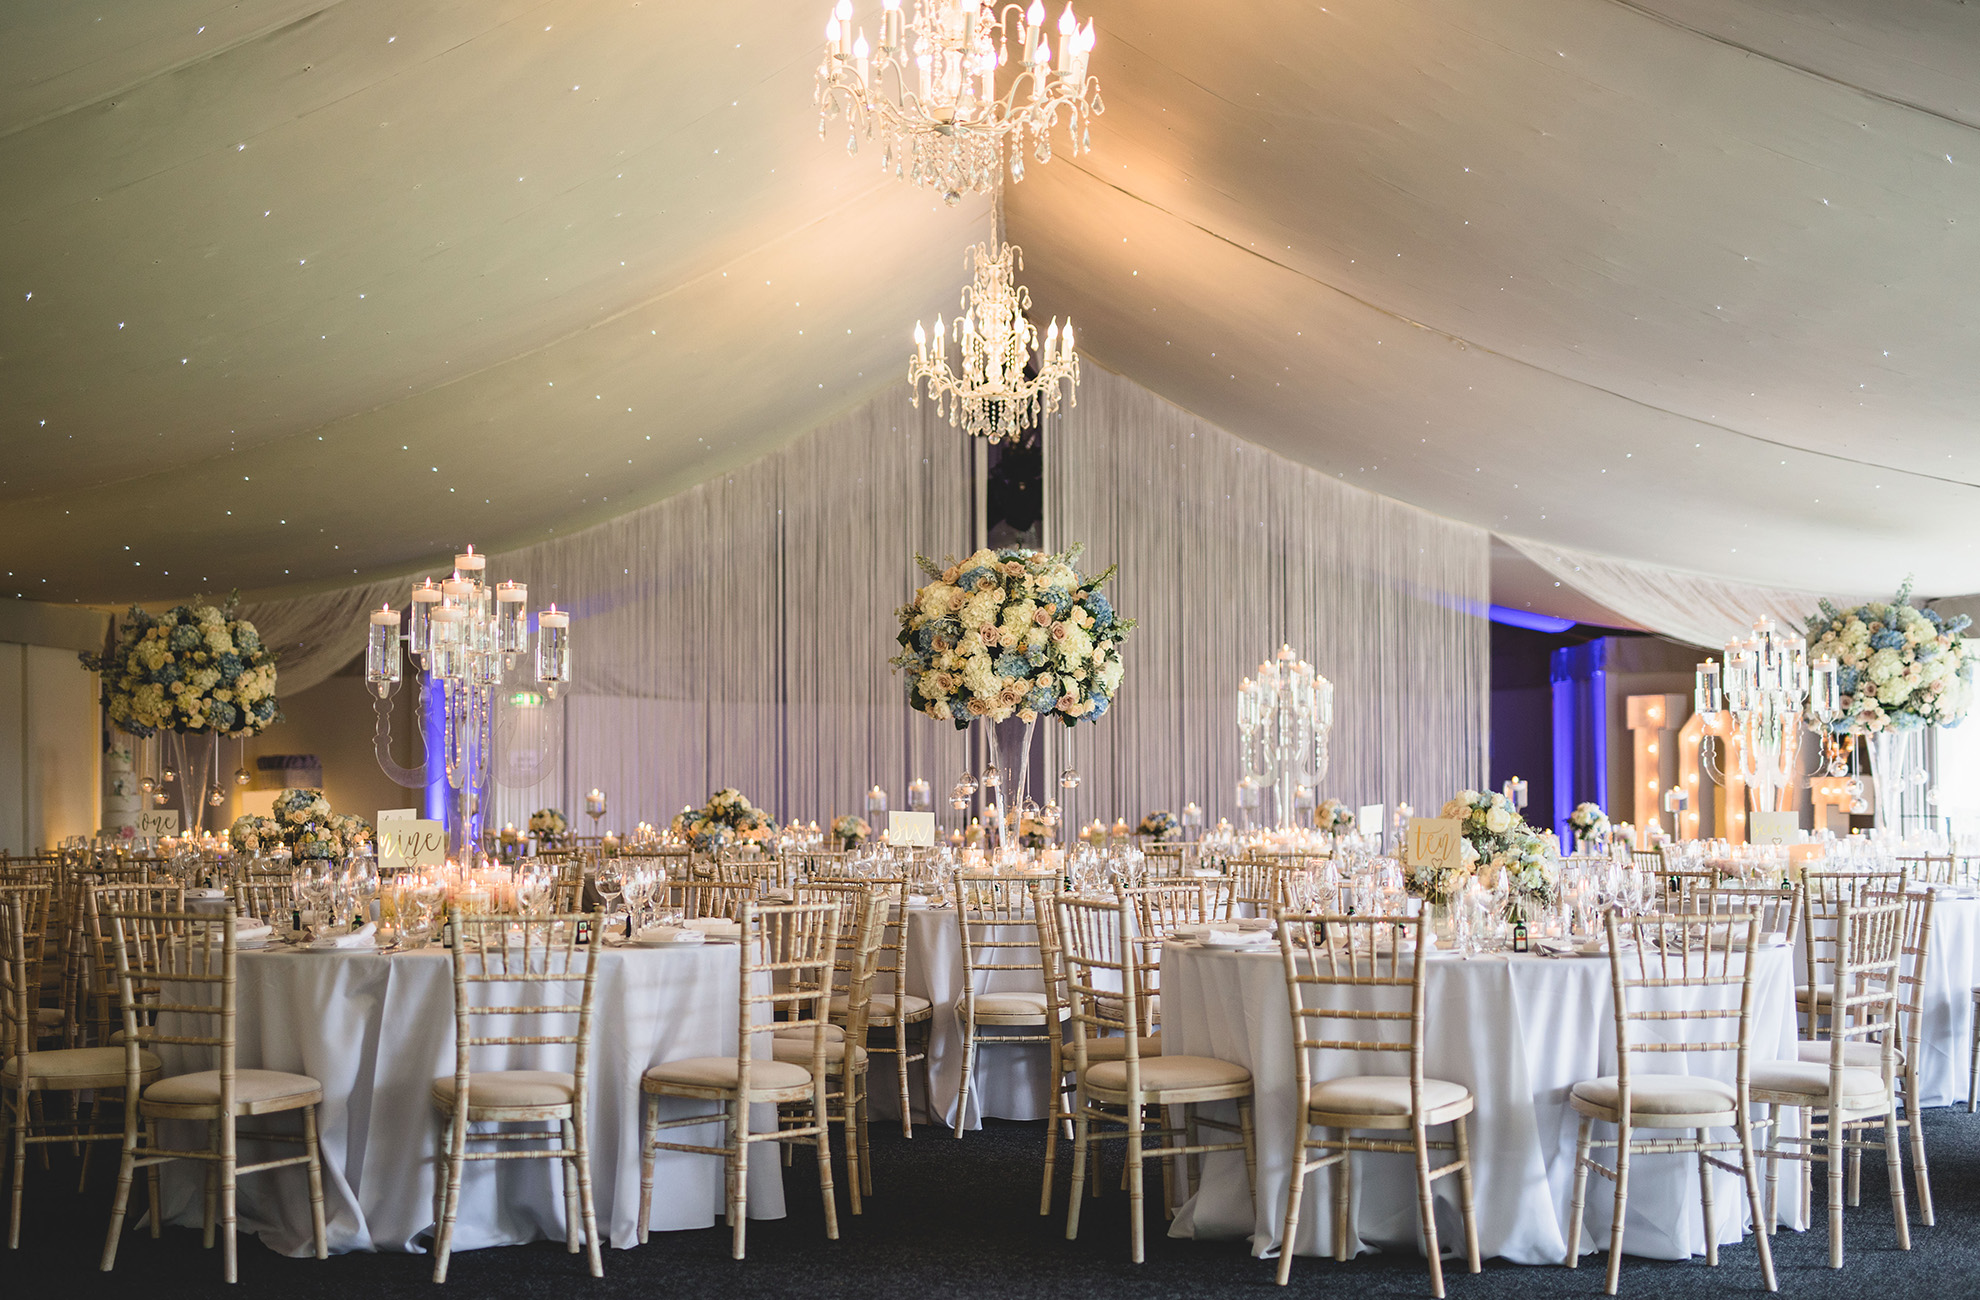 The Pavillion at Combermere Abbey wedding venue in Cheshire is set up for an elegant wedding reception